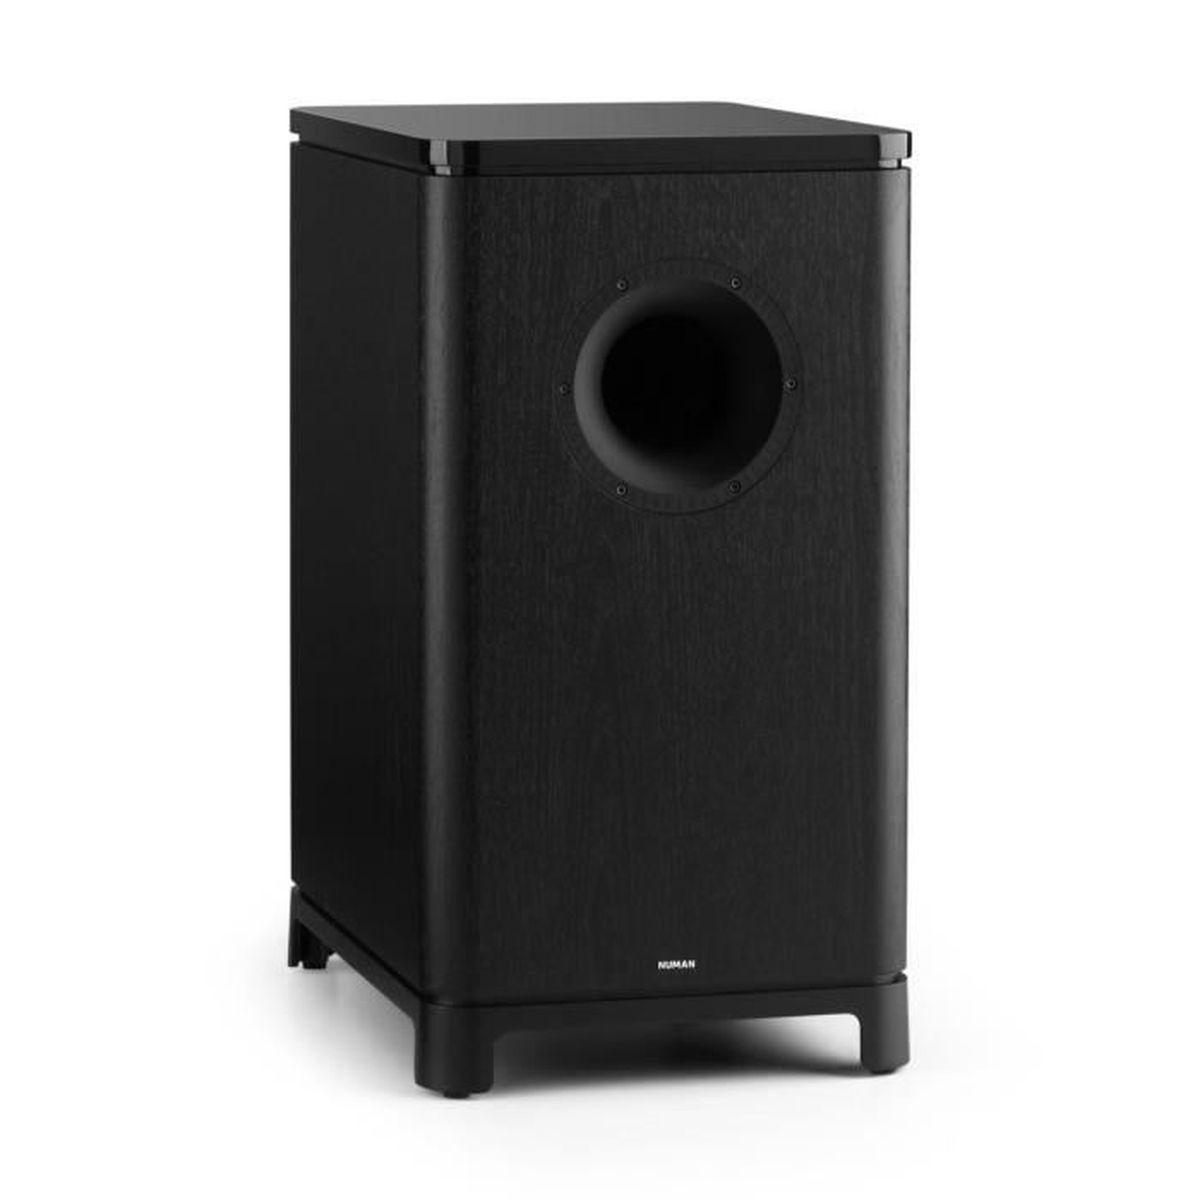 numan unisub subwoofer actif audiophile caisson de basse hifi 25 4 cm socle de pose en. Black Bedroom Furniture Sets. Home Design Ideas